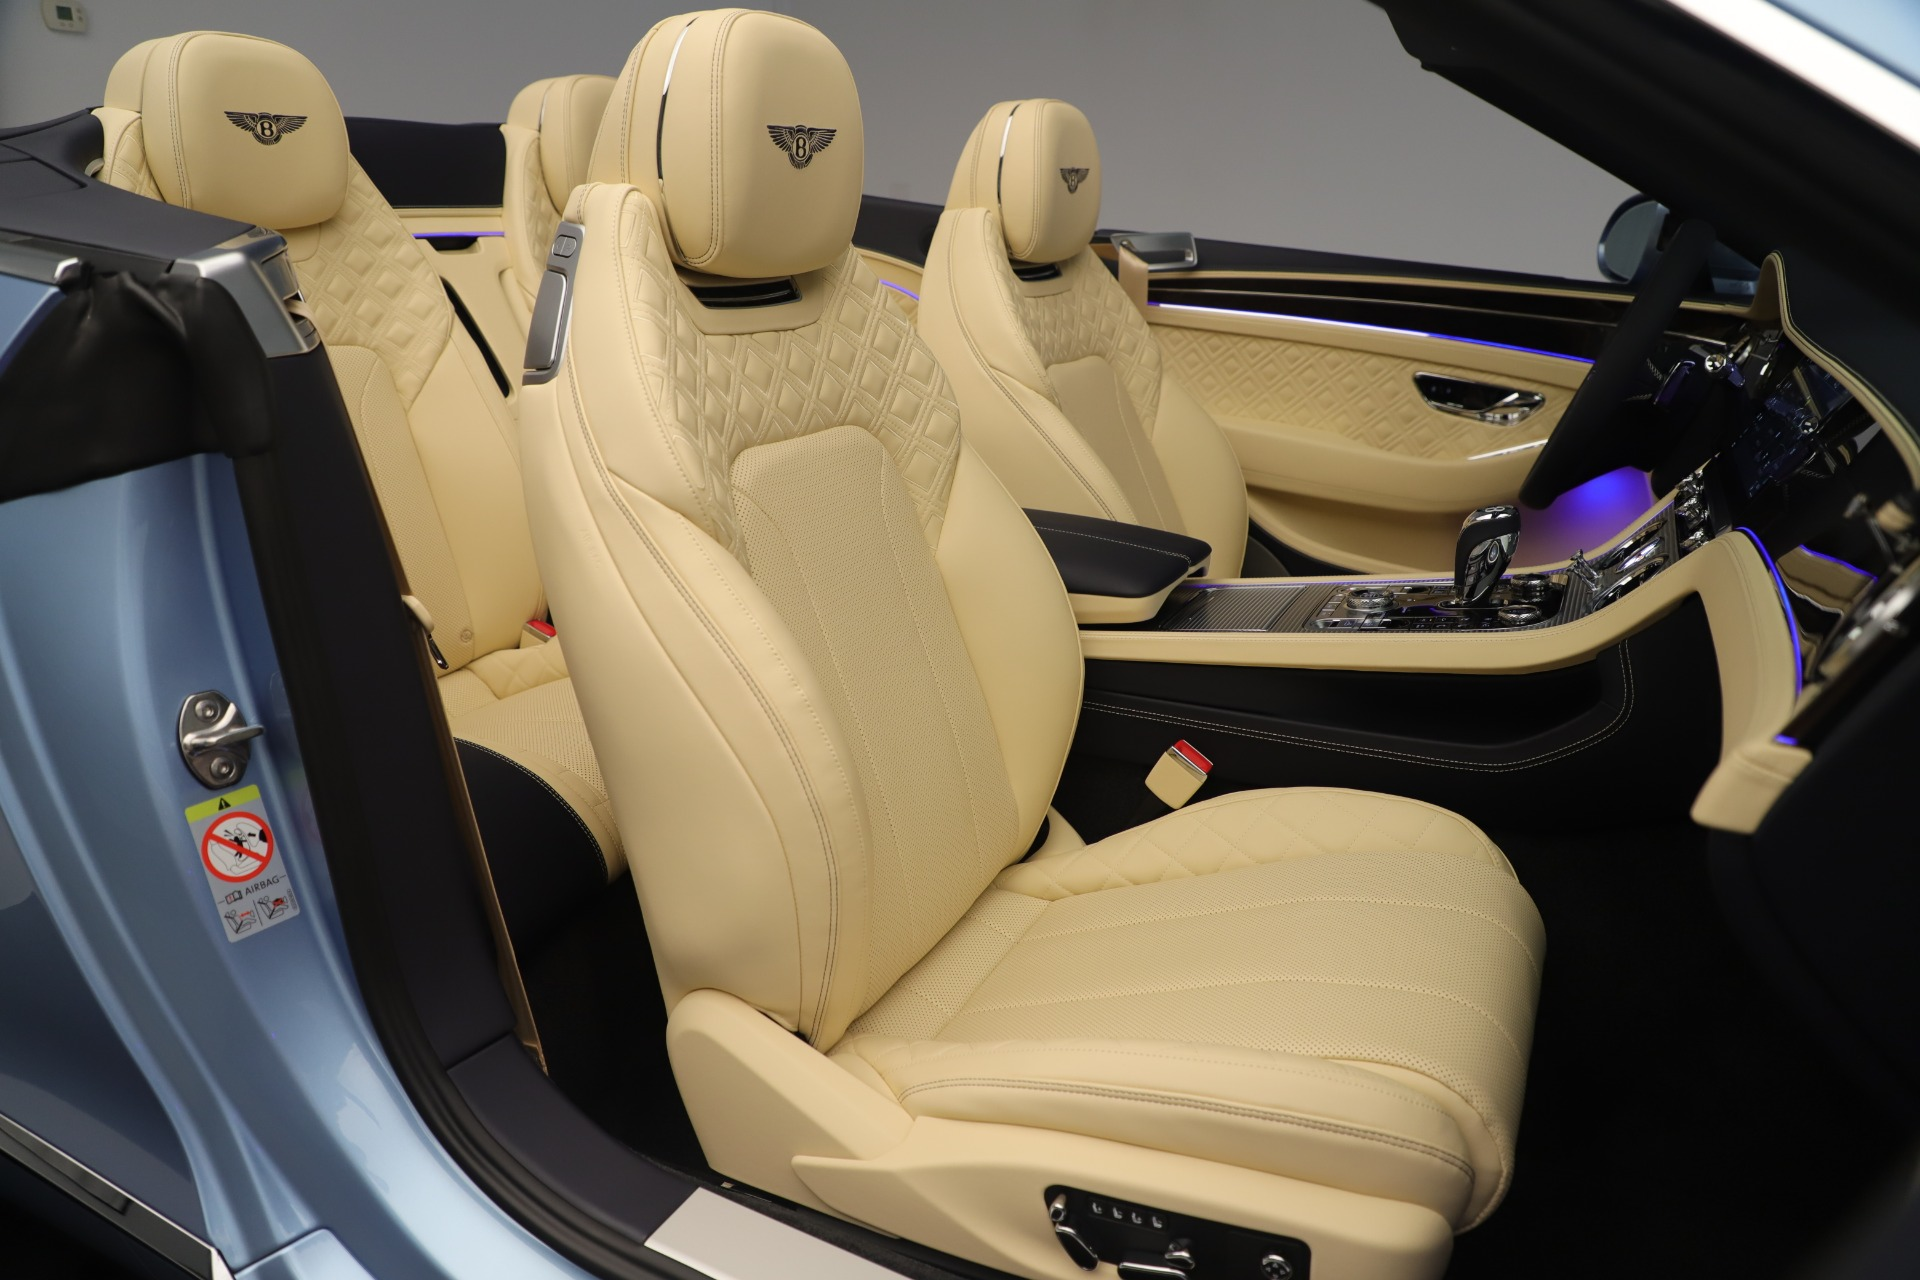 Used 2020 Bentley Continental GTC V8 For Sale In Westport, CT 3472_p30